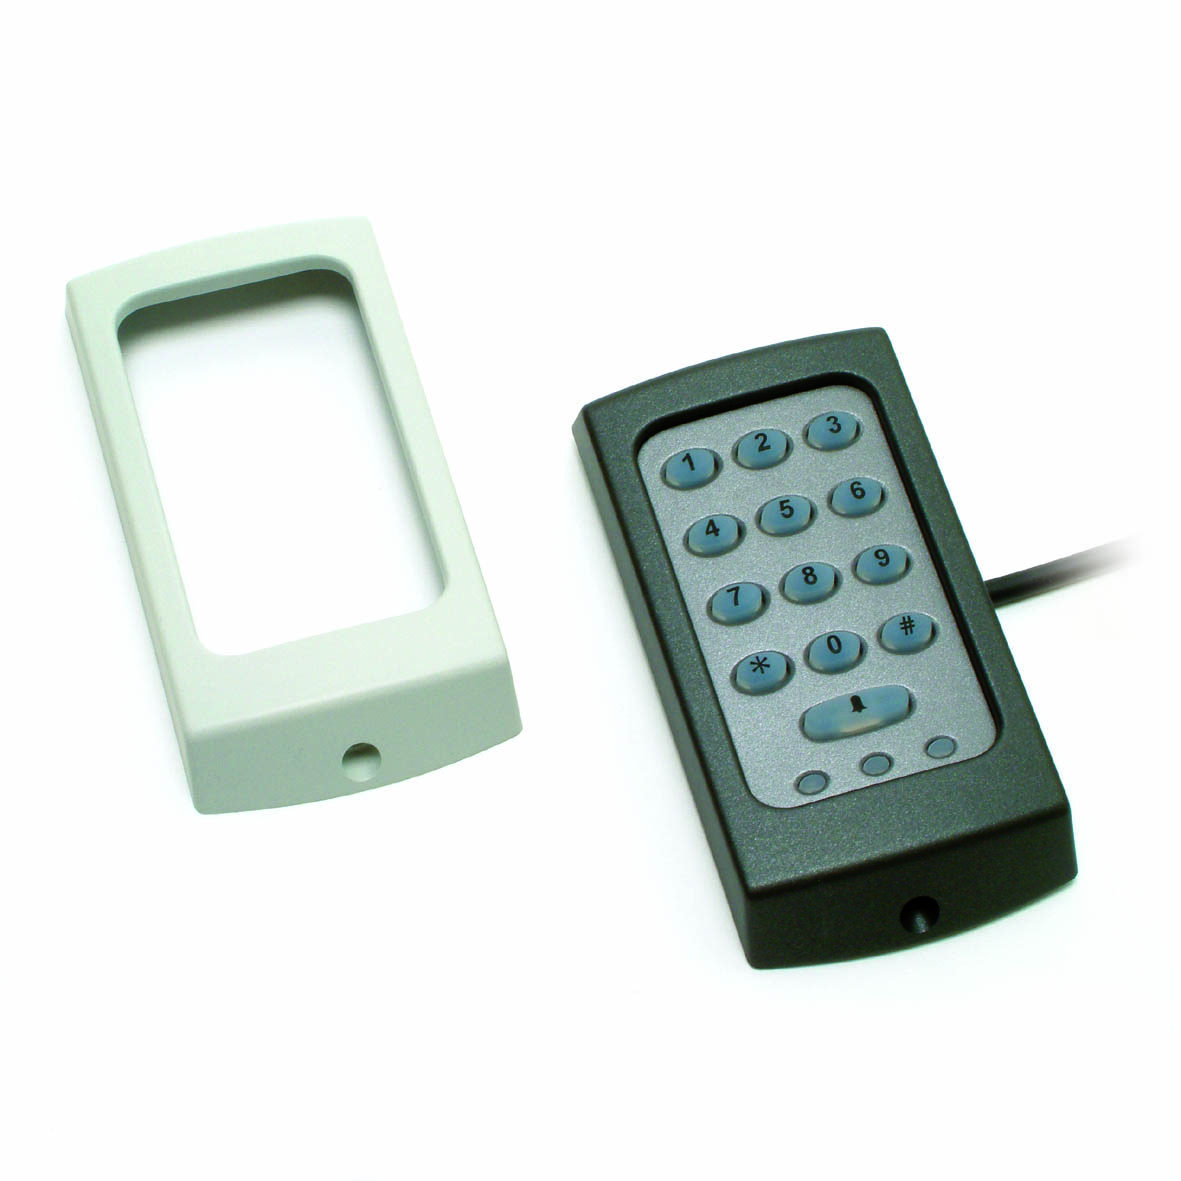 TOUCHLOCK keypad - K50